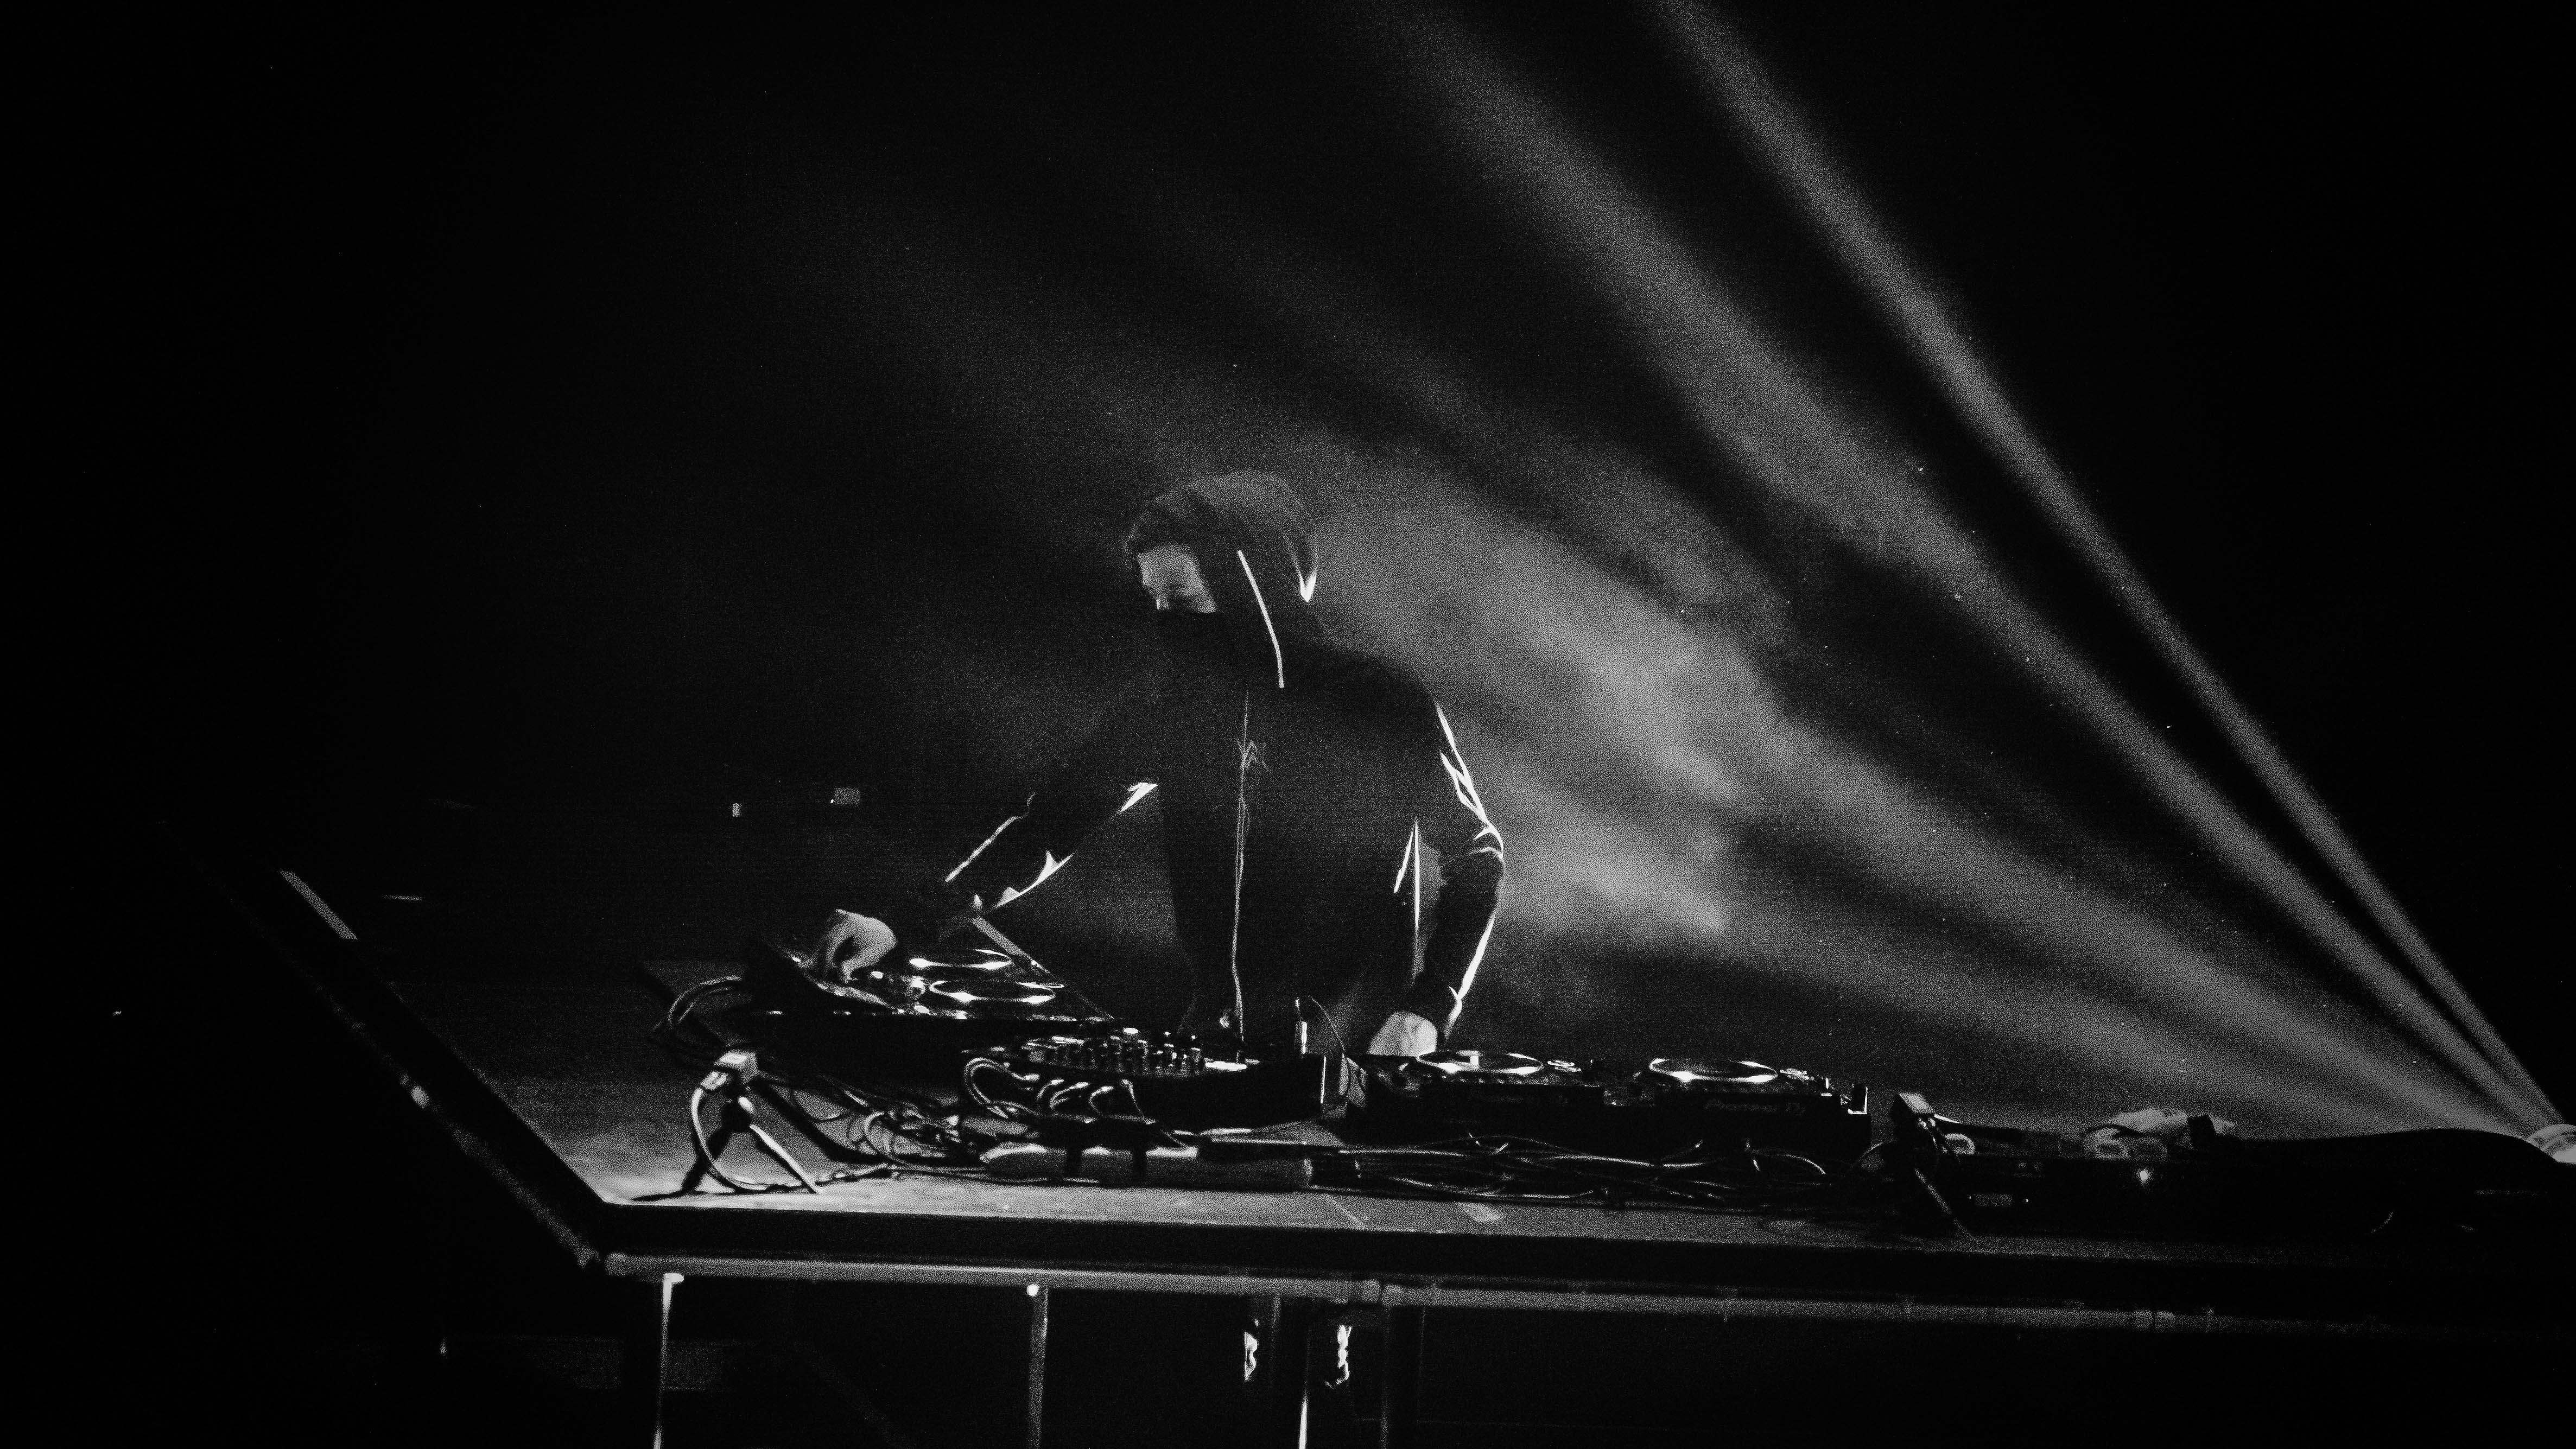 Alan Walker Dj Monochrome 4k Hd Music 4k Wallpapers Images Backgrounds Photos And Pictures